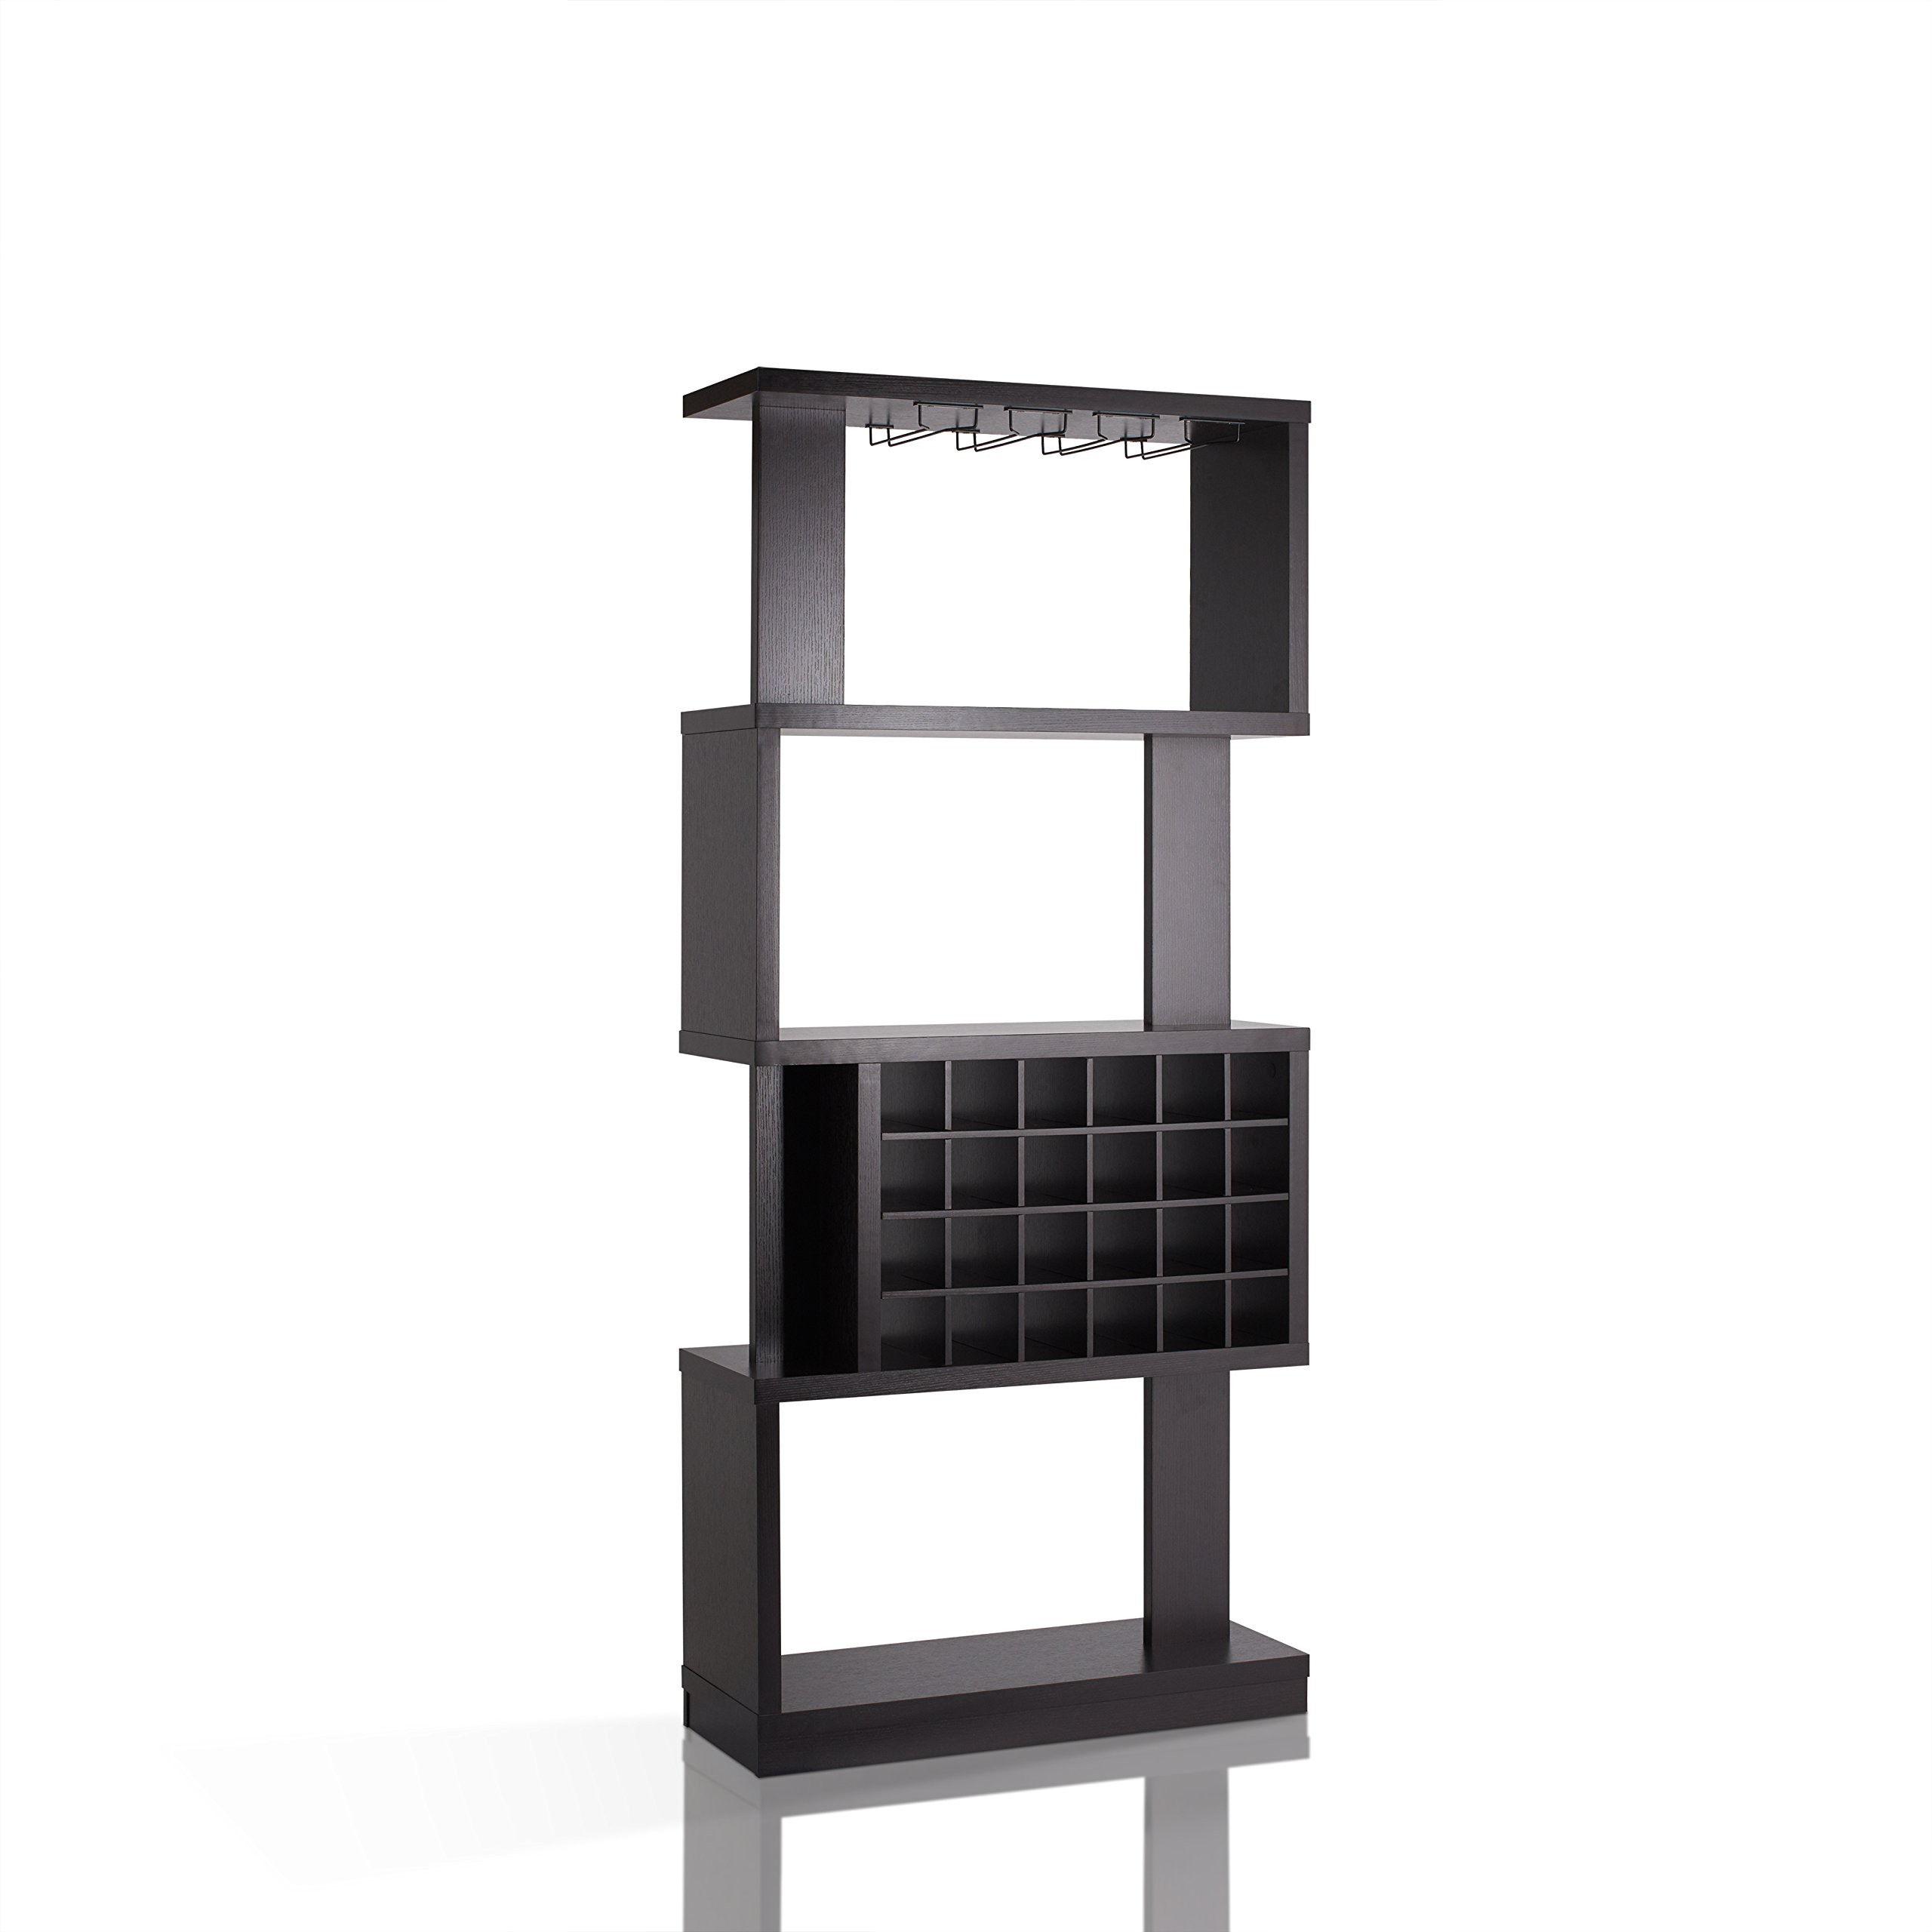 HOMES: Inside + Out IDI-14989 Cappuccino Contemporary Larson Wine Stand